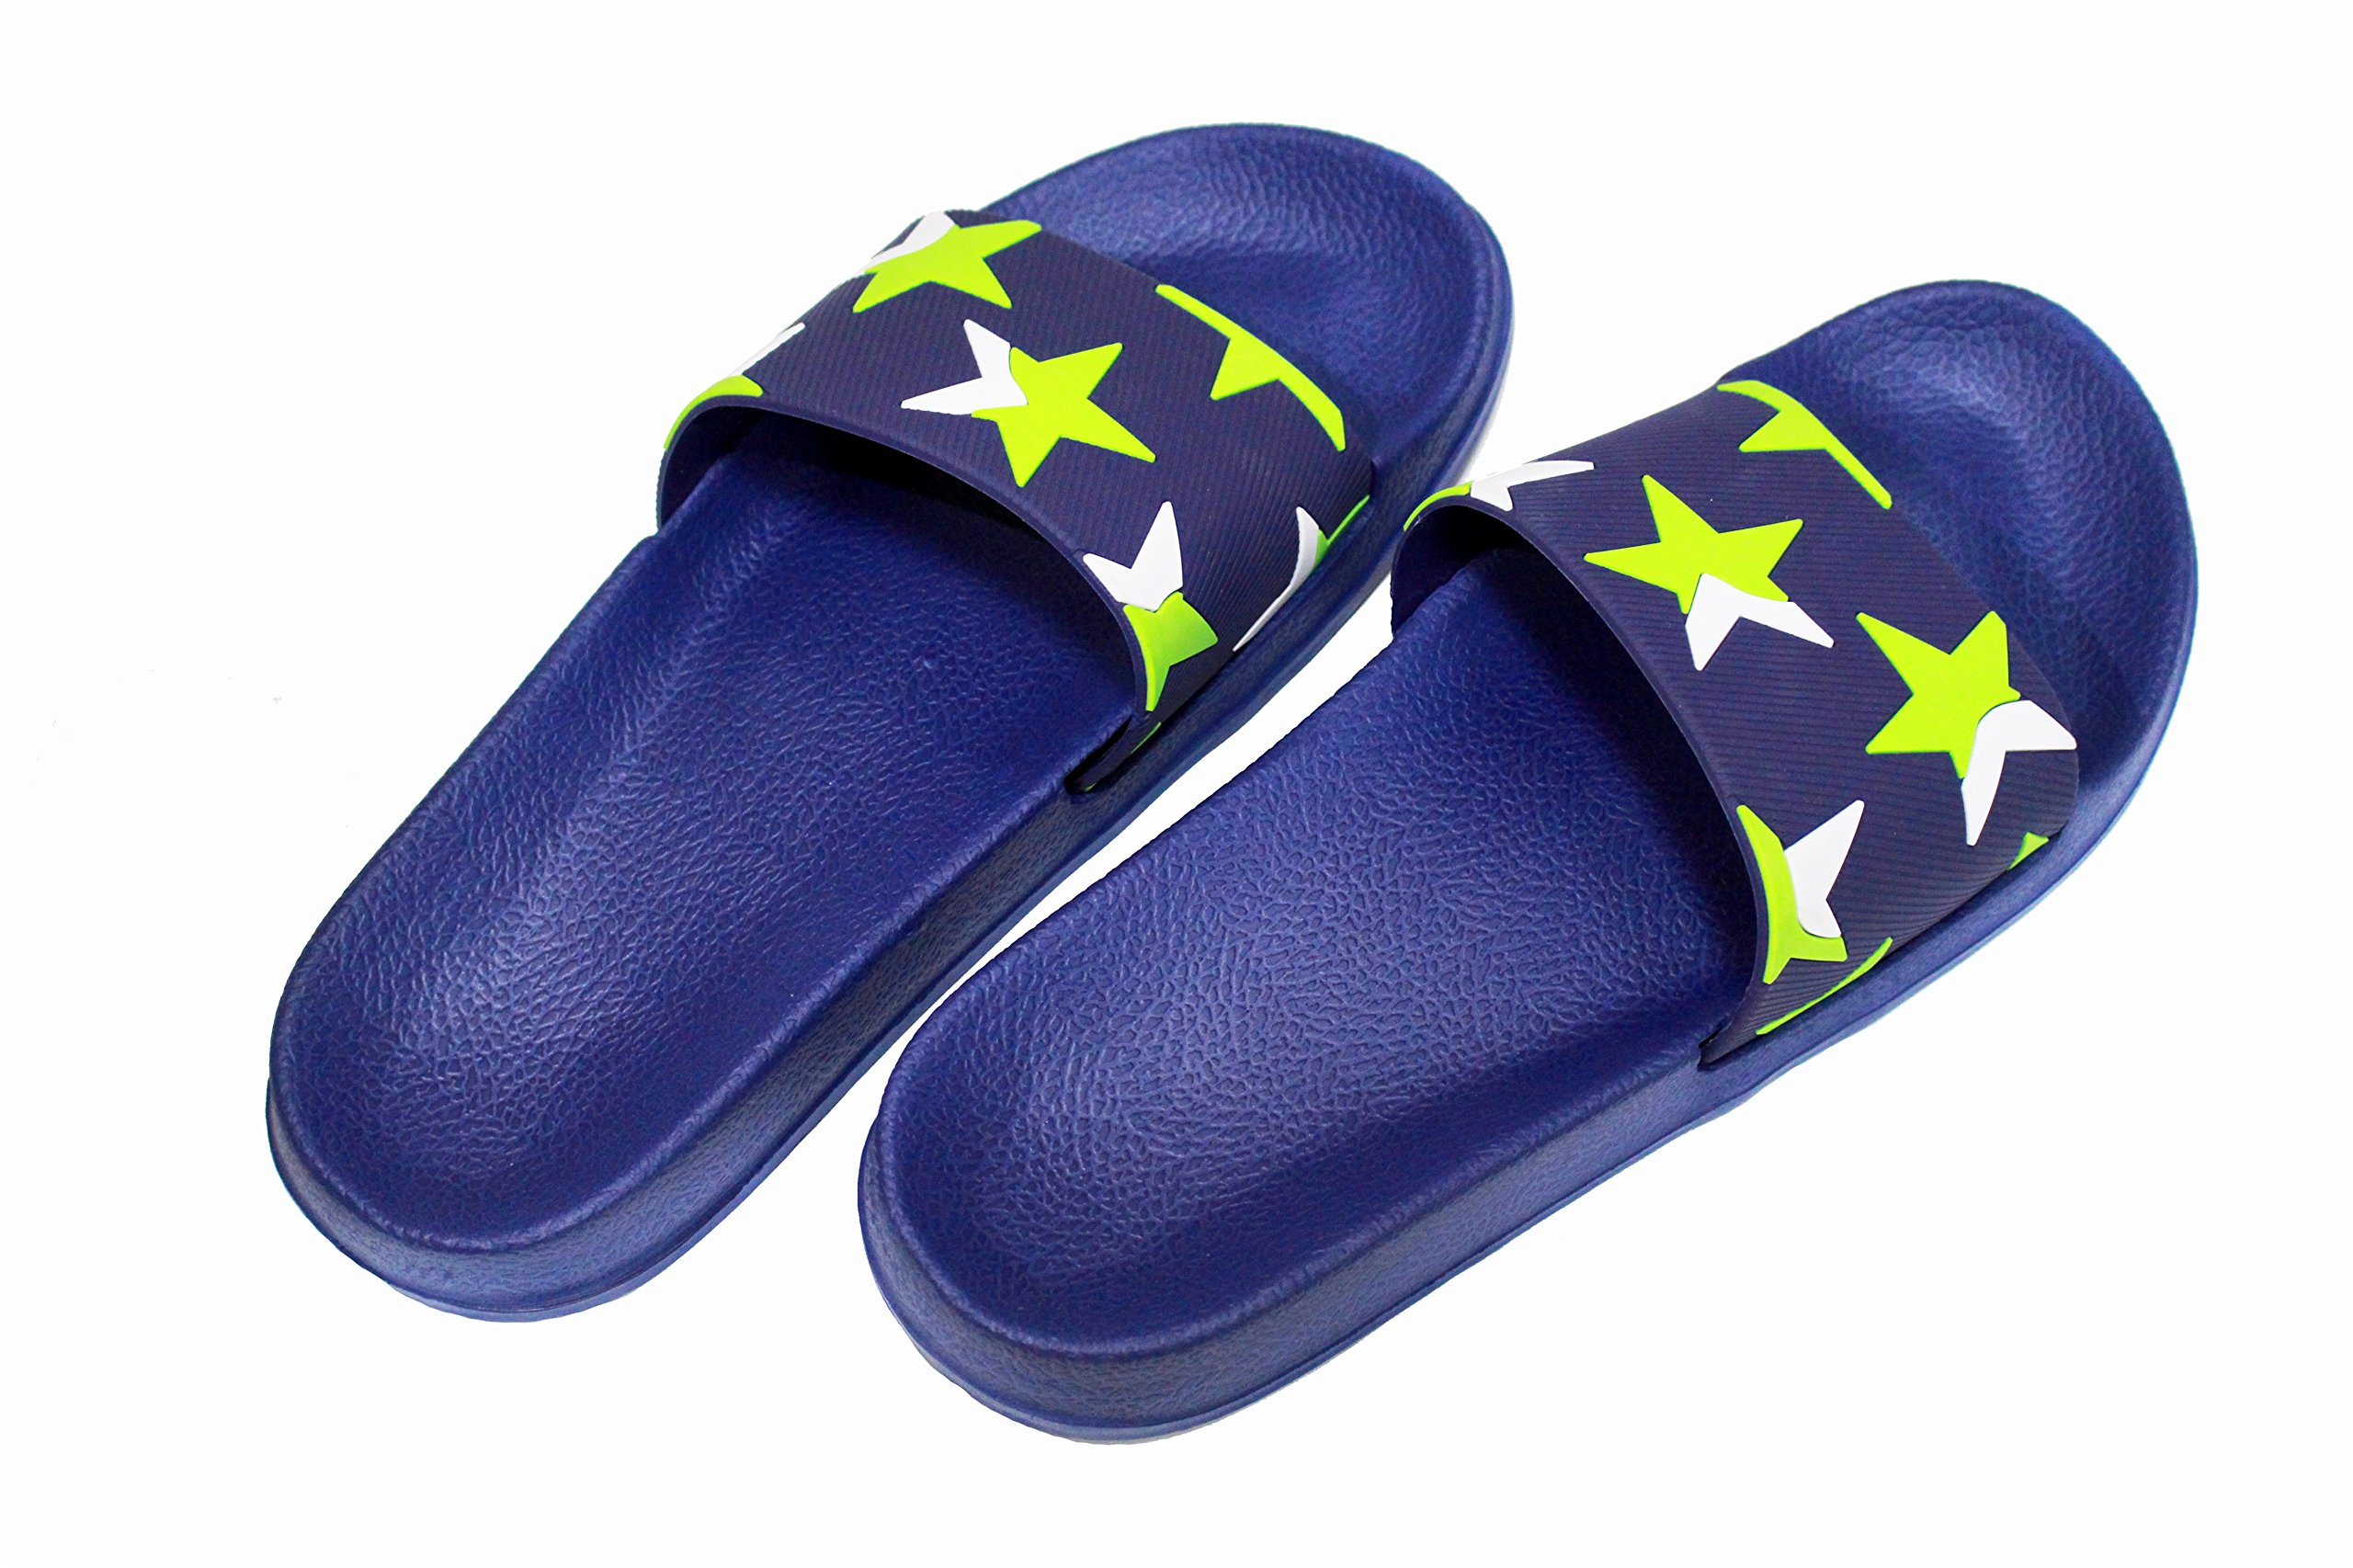 VIVWAY Men's Bathroom Shower Slippers Summer Beach Non-Slip Soft Pool House Sandals Blue US10